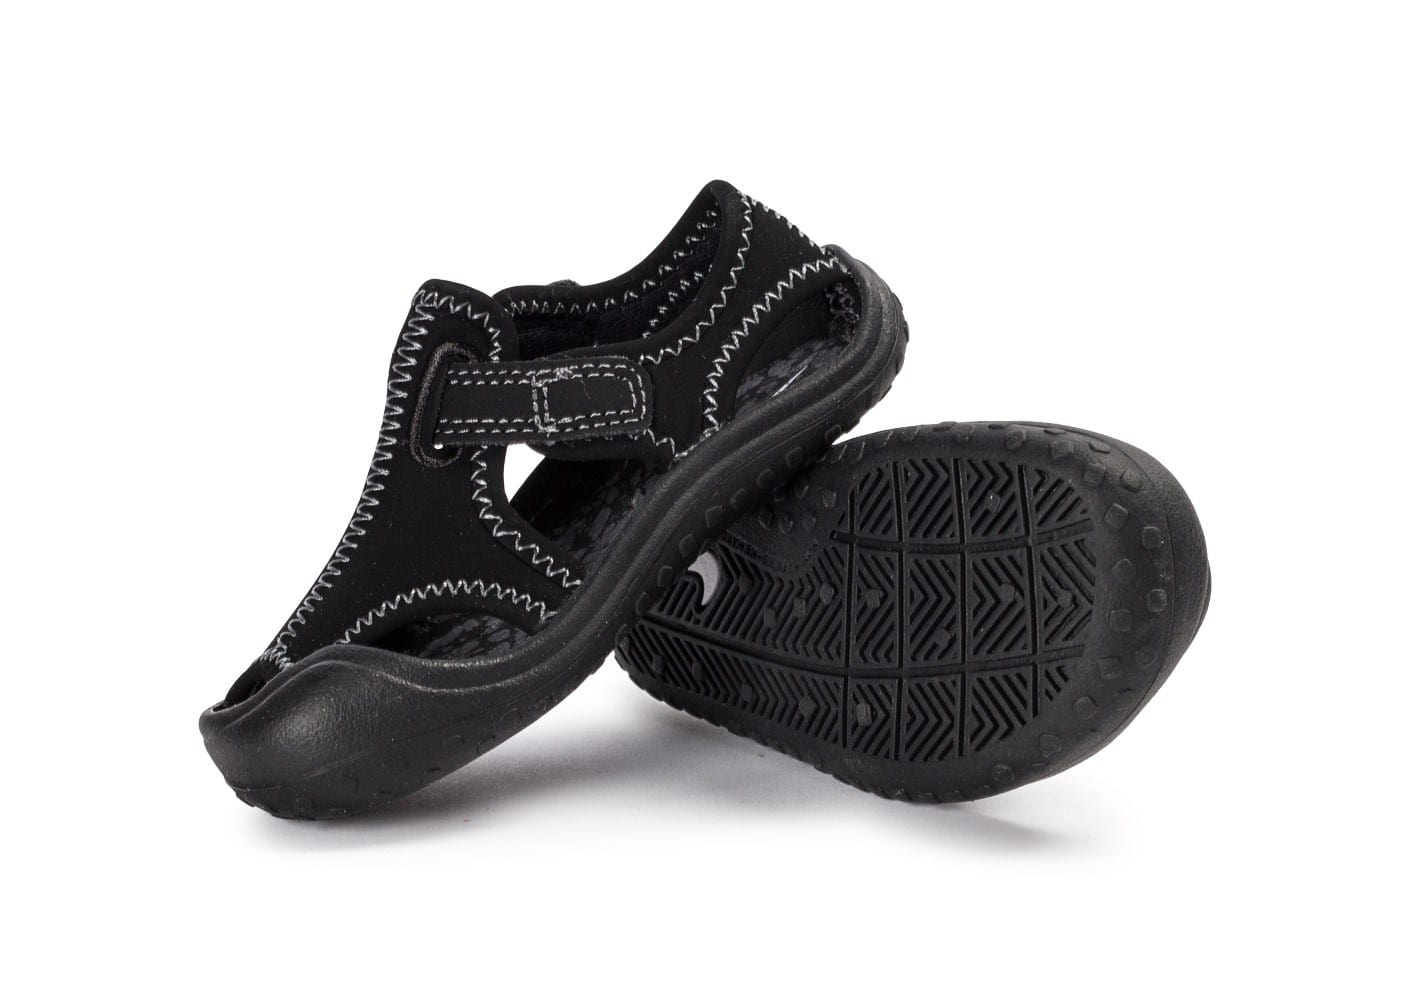 detailed look 76bcb b20b6 ... Chaussures Nike Sunray Protect noire vue intérieure ...